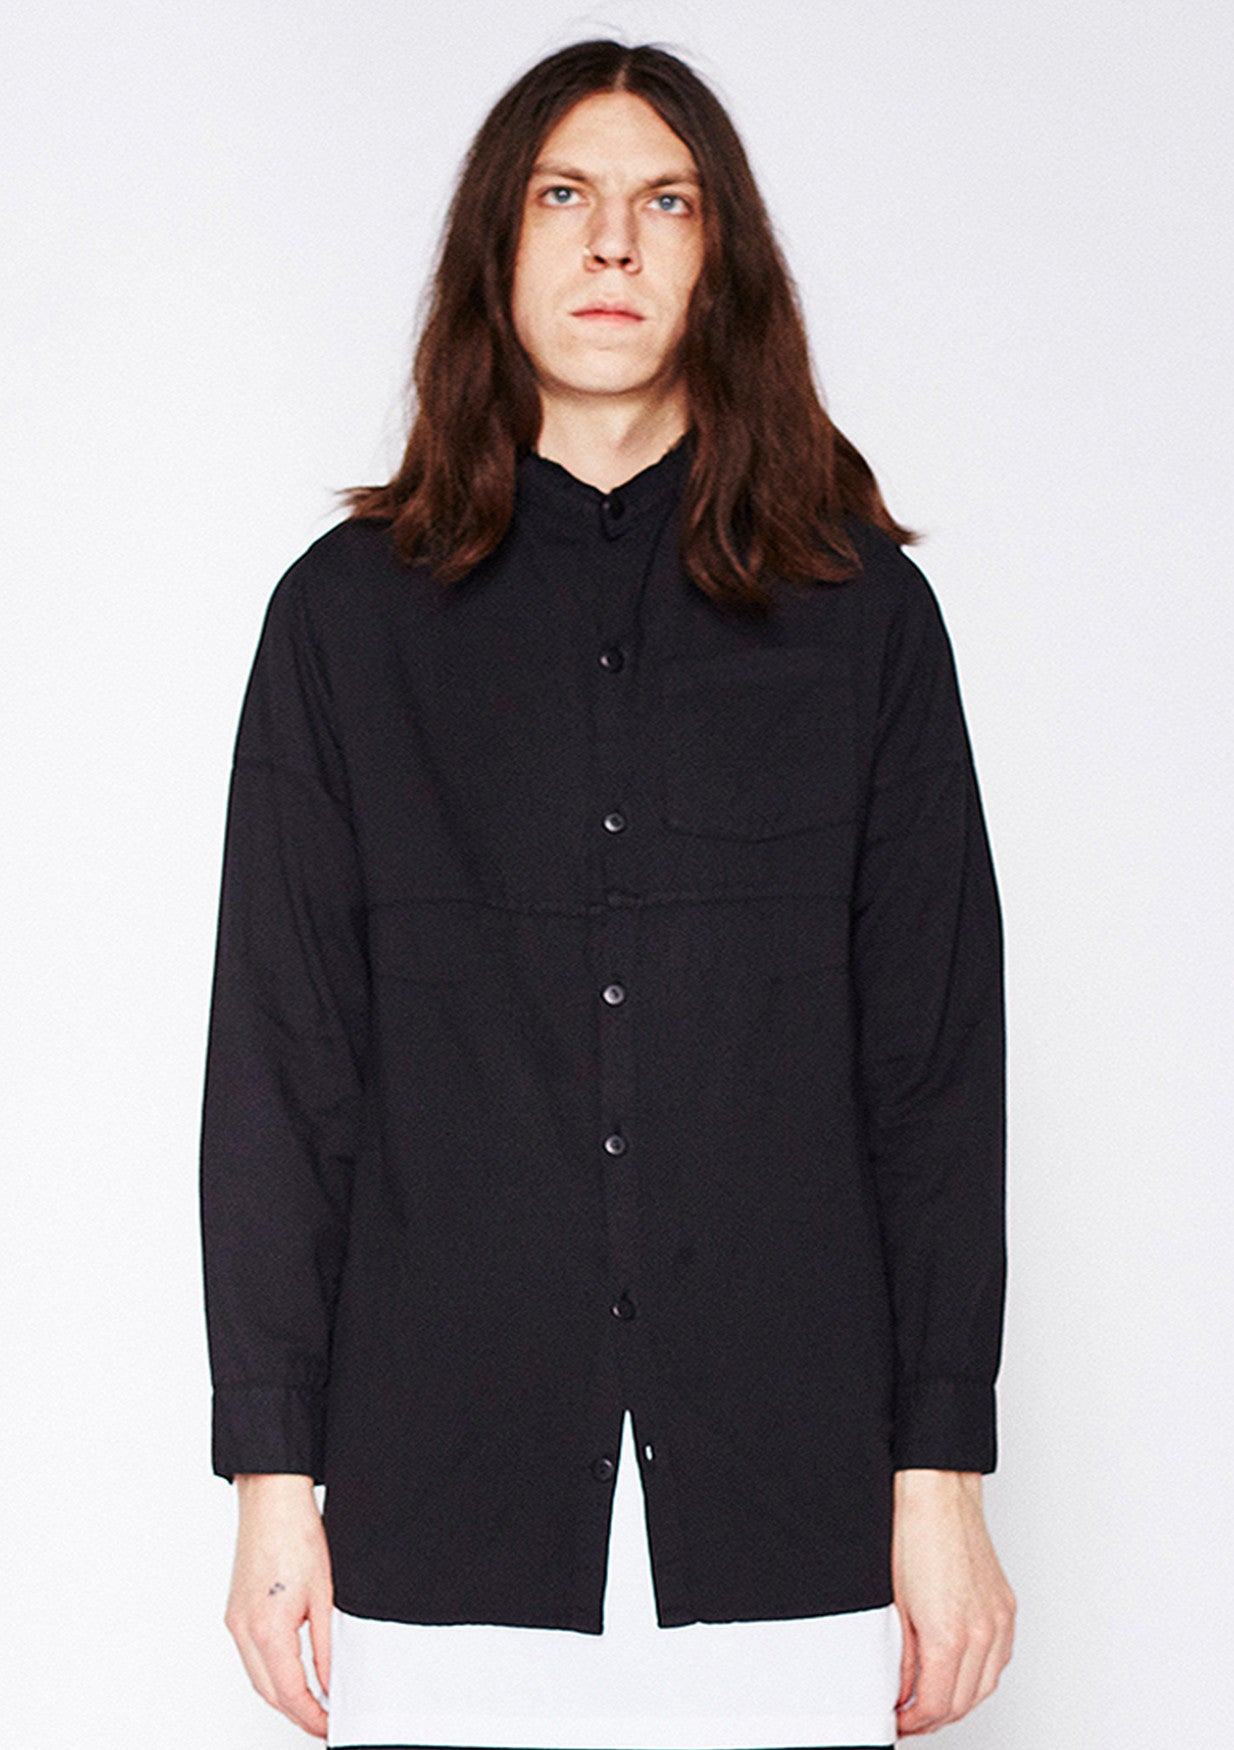 YAMDROK GRANDDAD SHIRT - ONLY SIZE M LEFT